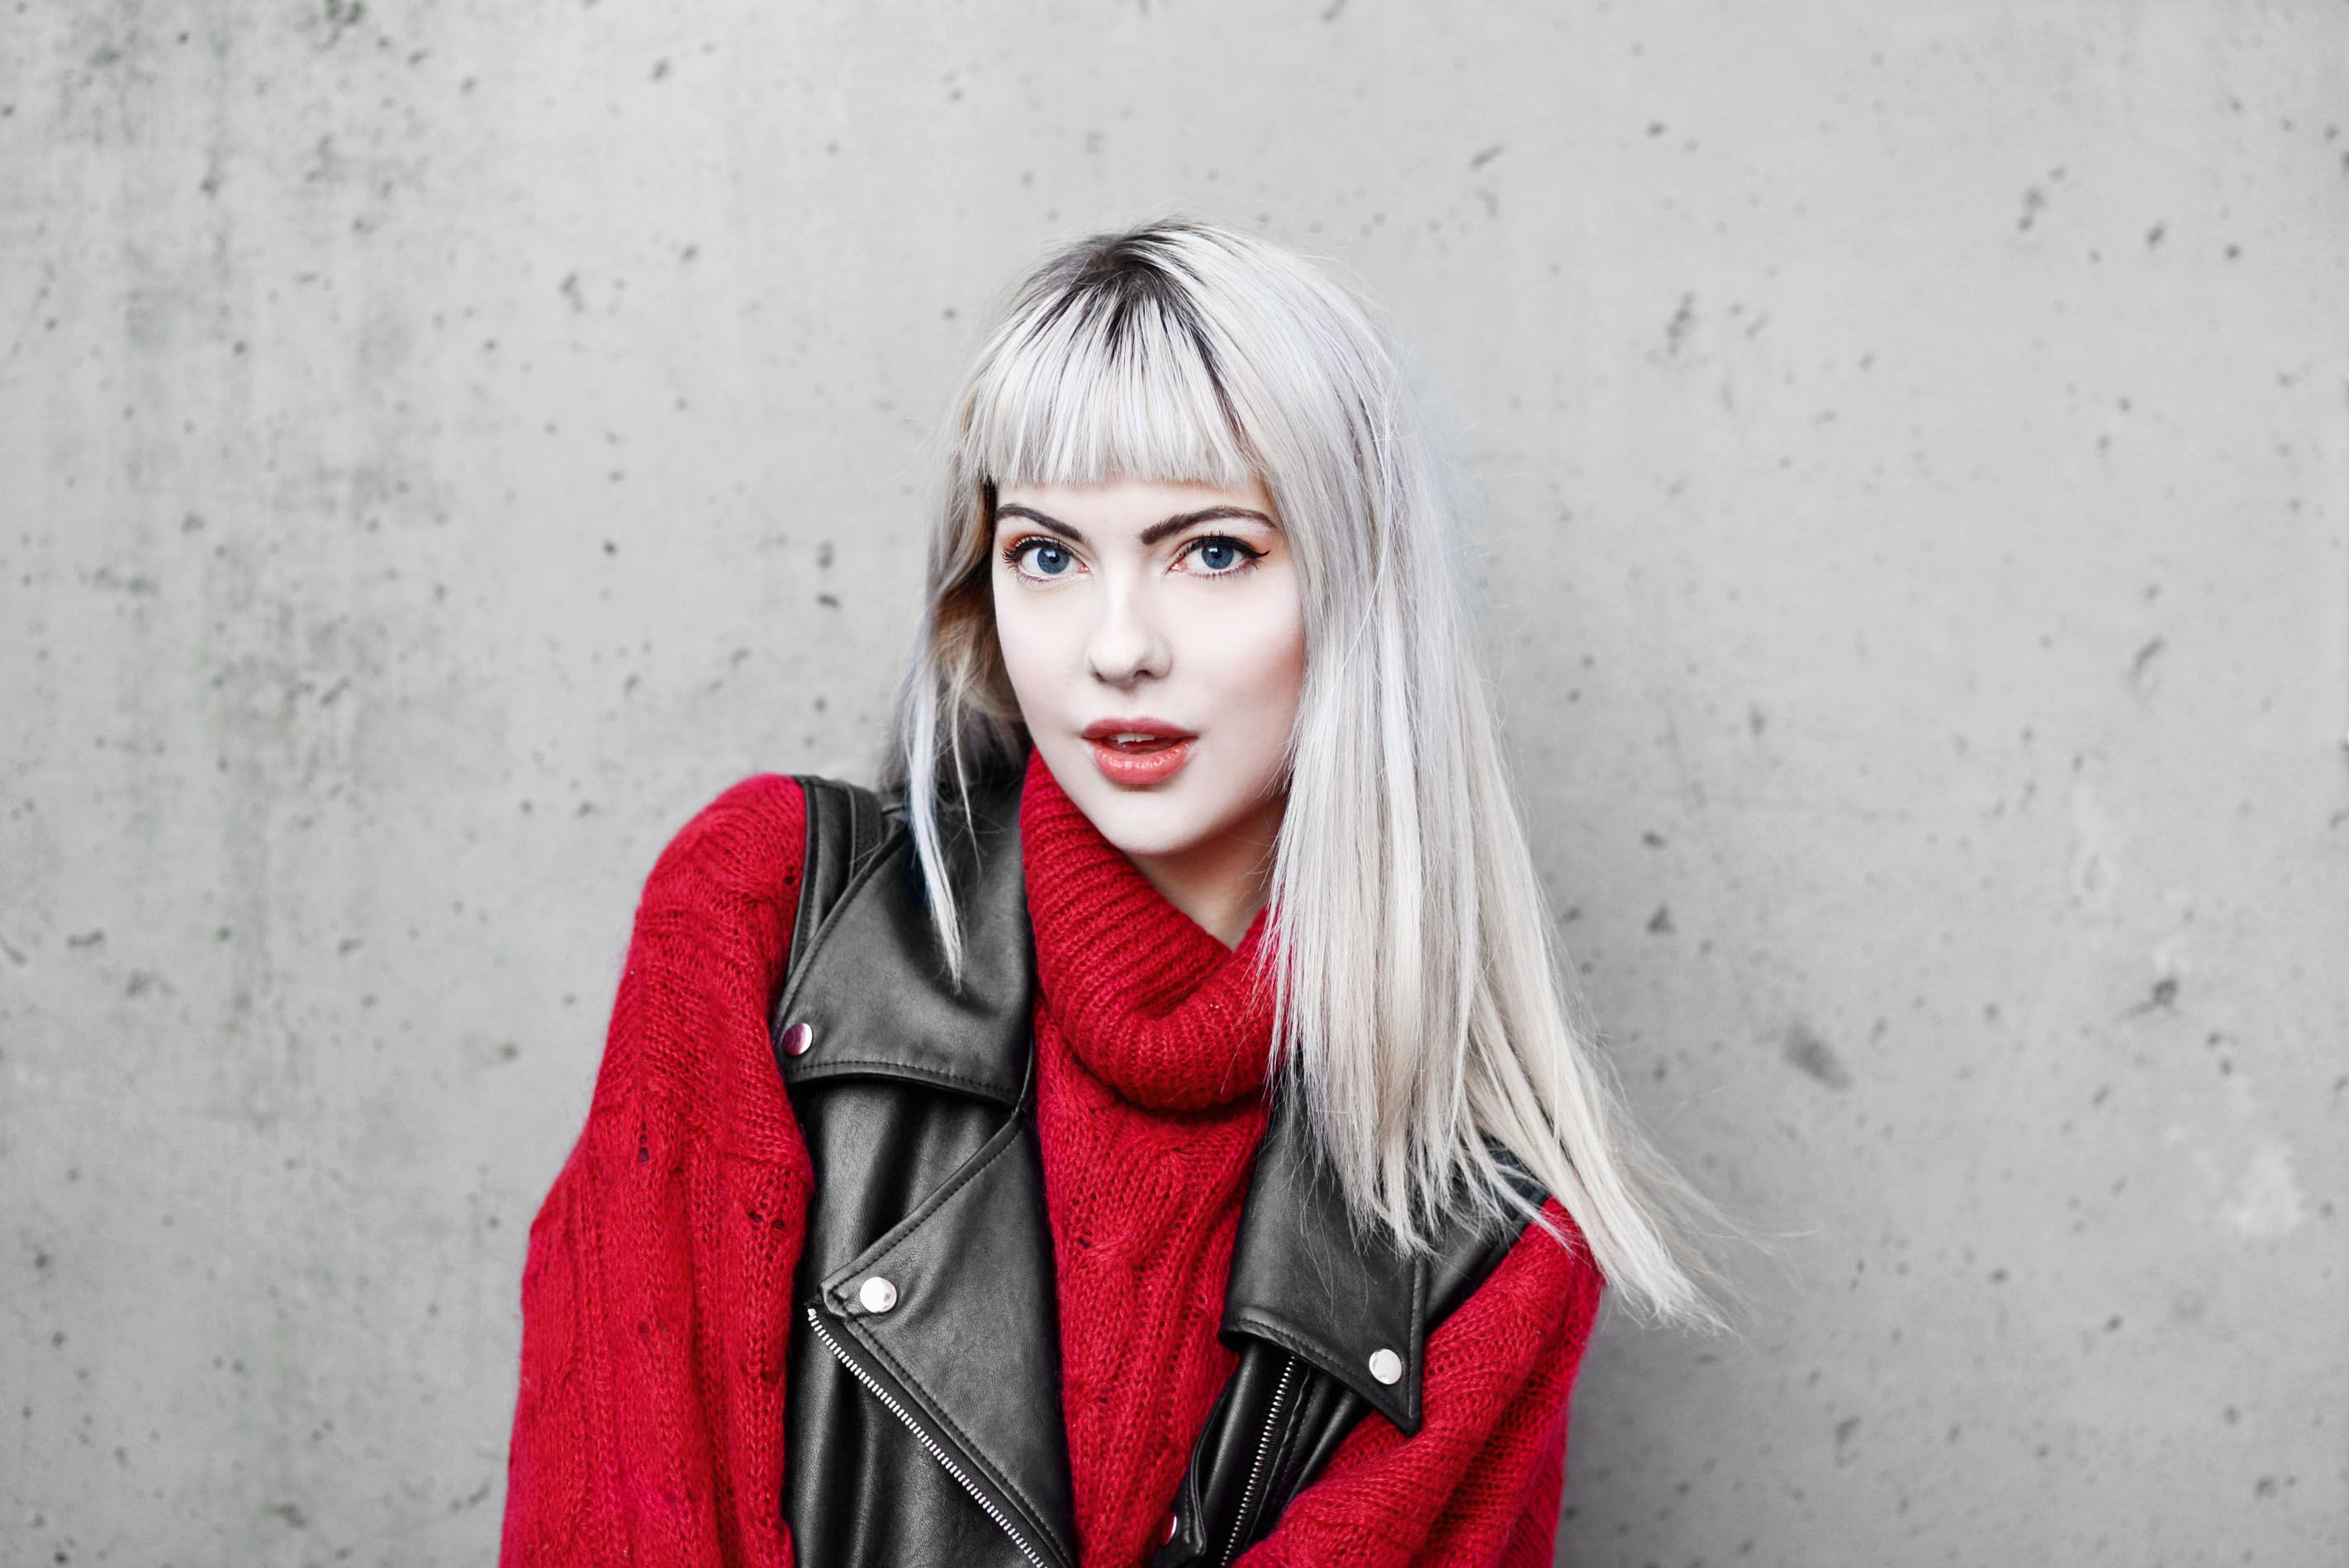 Comfy and pretty : Blogger Ebba Zingmark